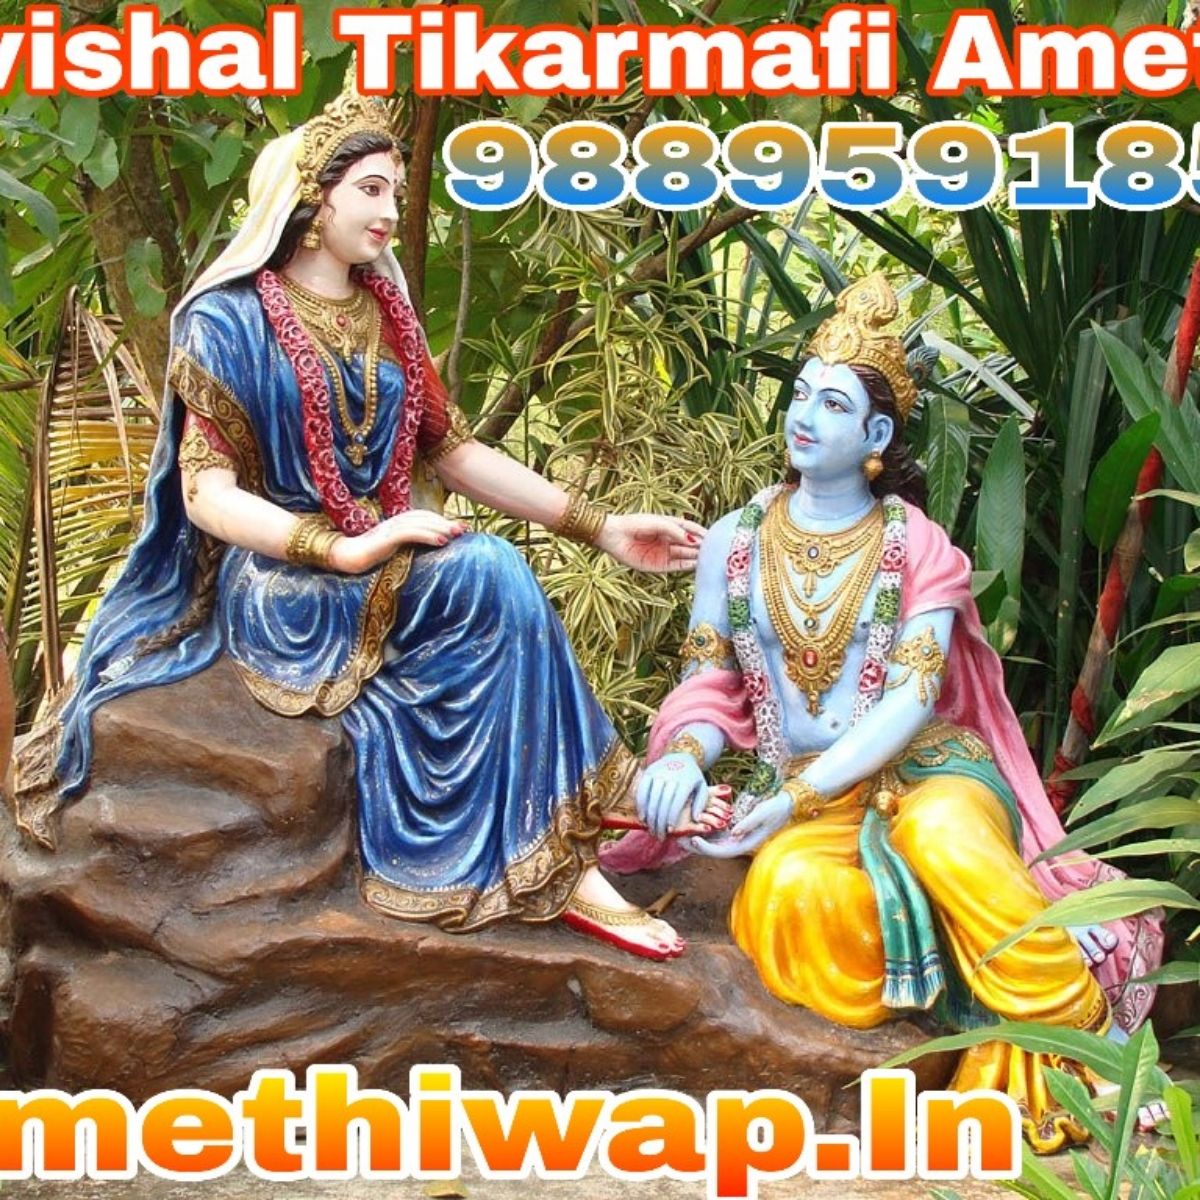 Divani Me Diwani Song Download Download Mai To Teri Diwani Ho Gayi Re Djvishal Tikarmafi Amethi